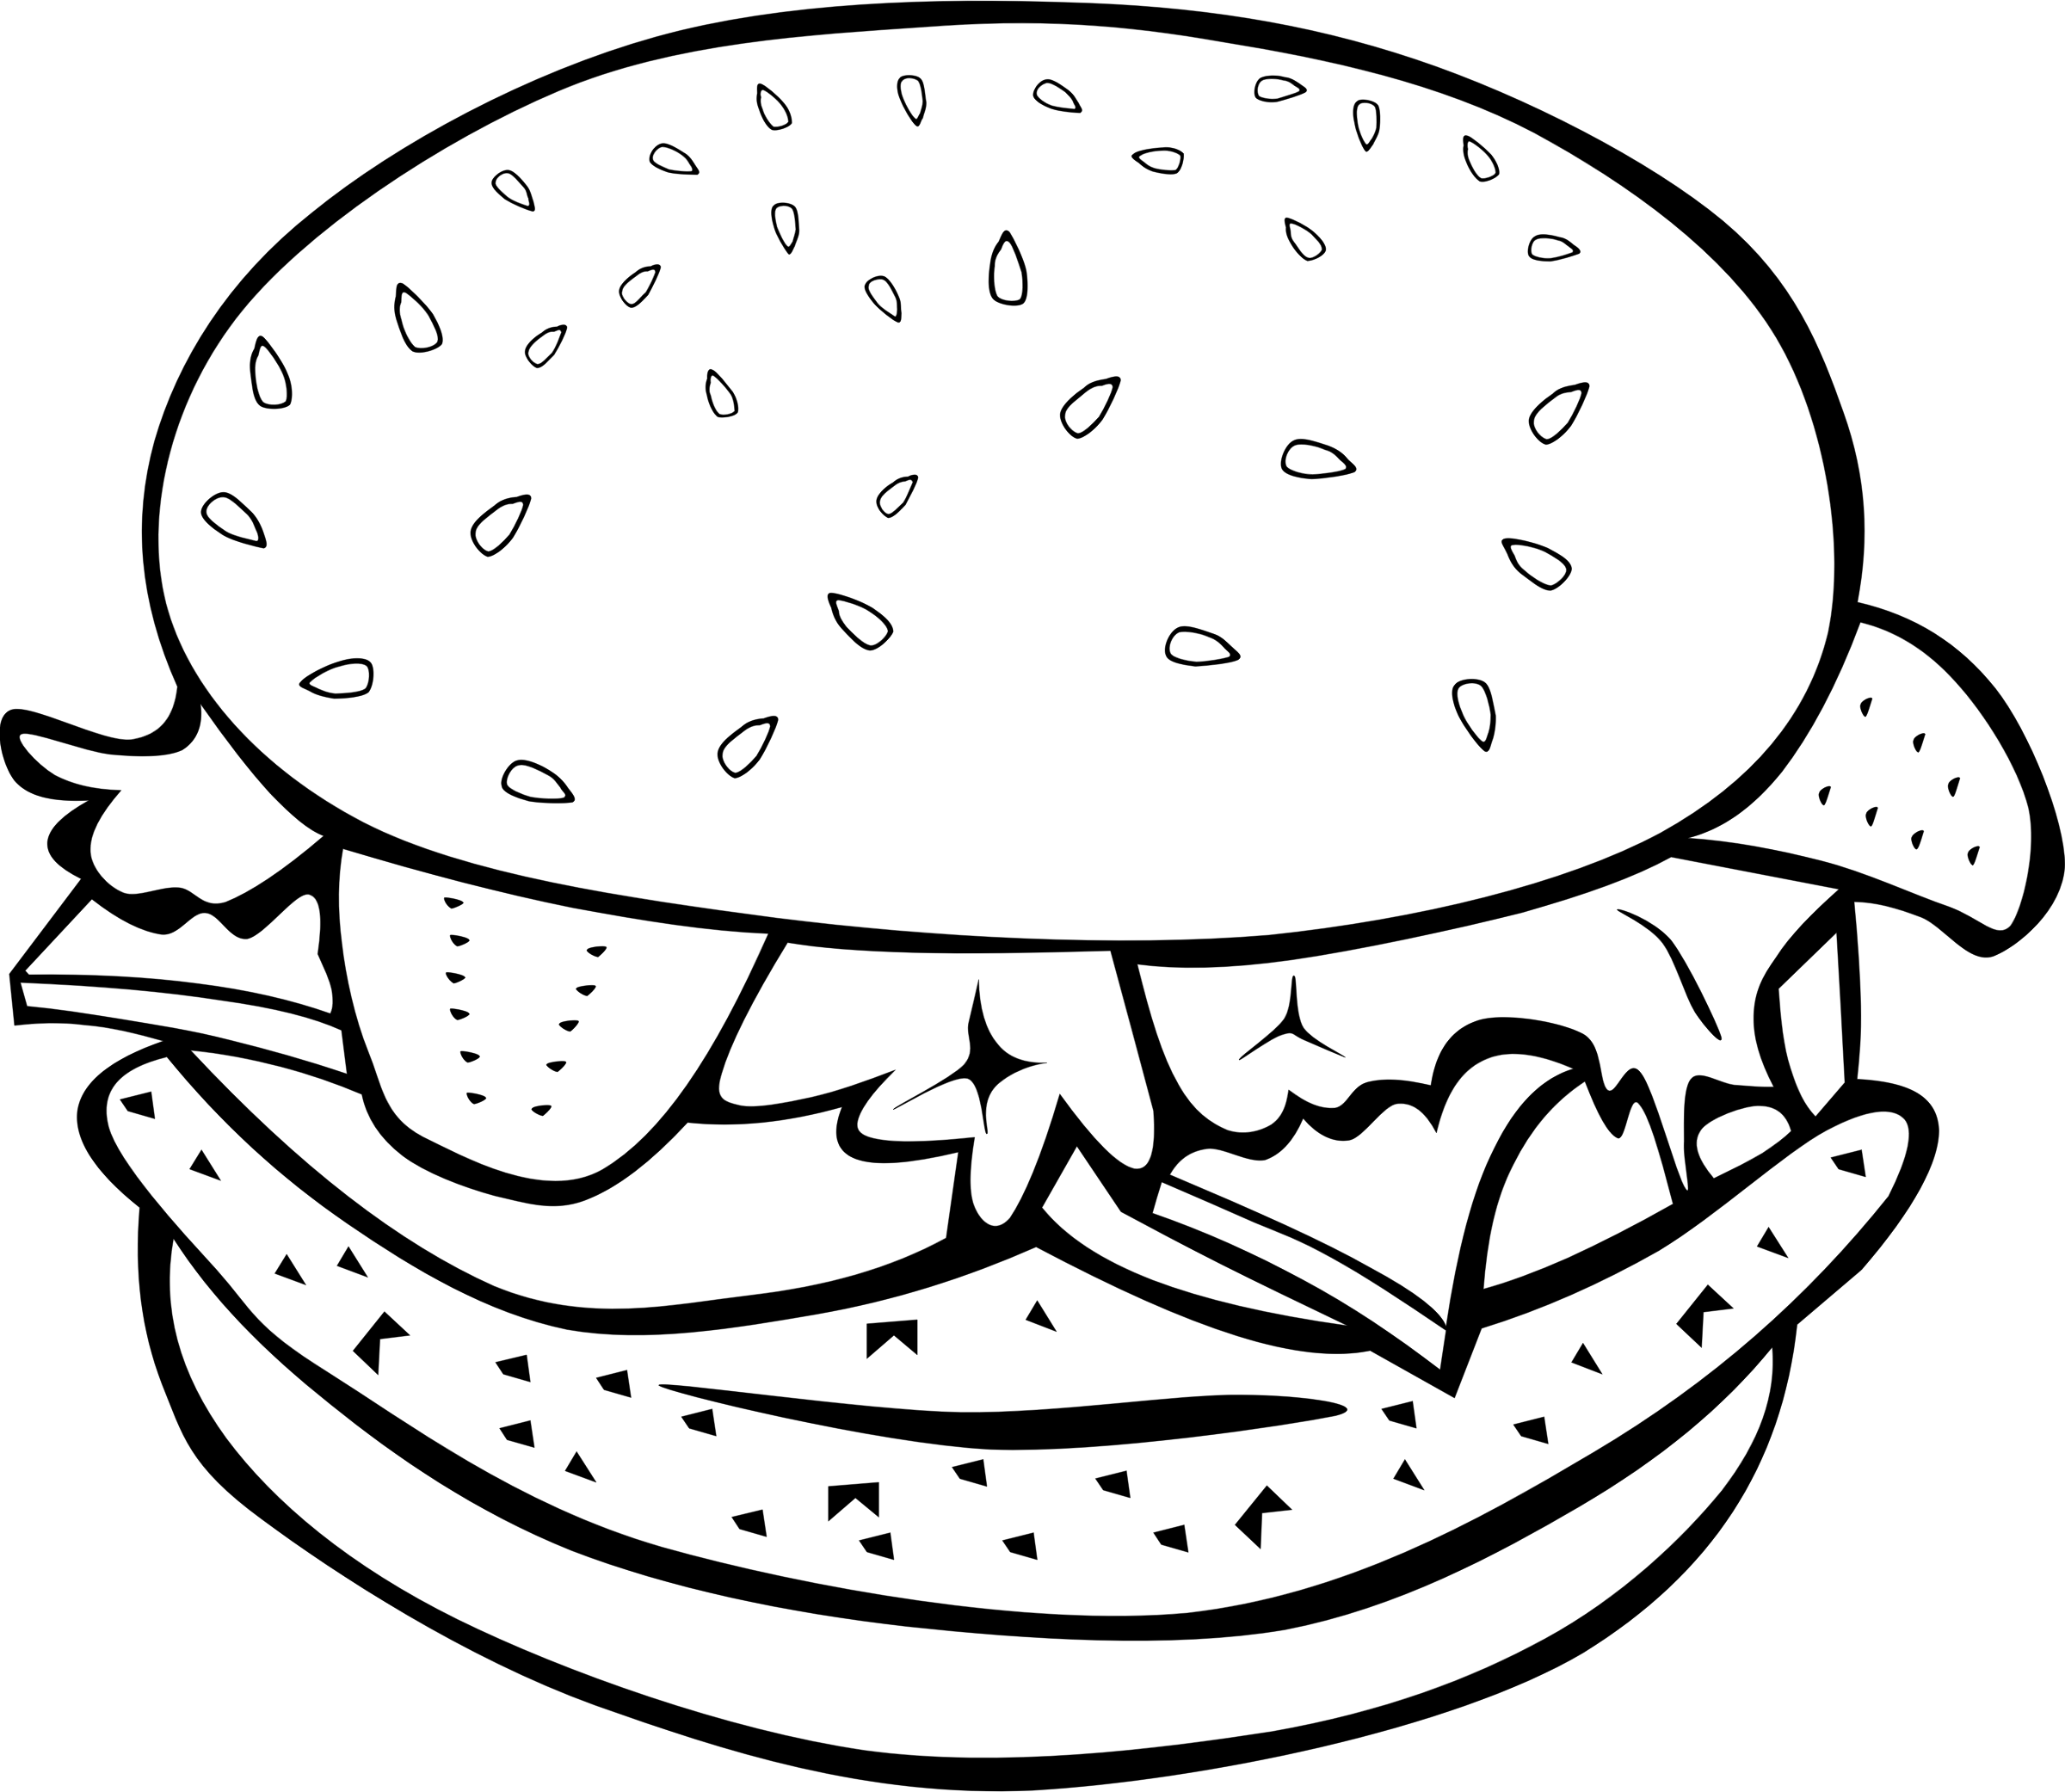 Cartoon drawing of at. Fish food clipart black and white